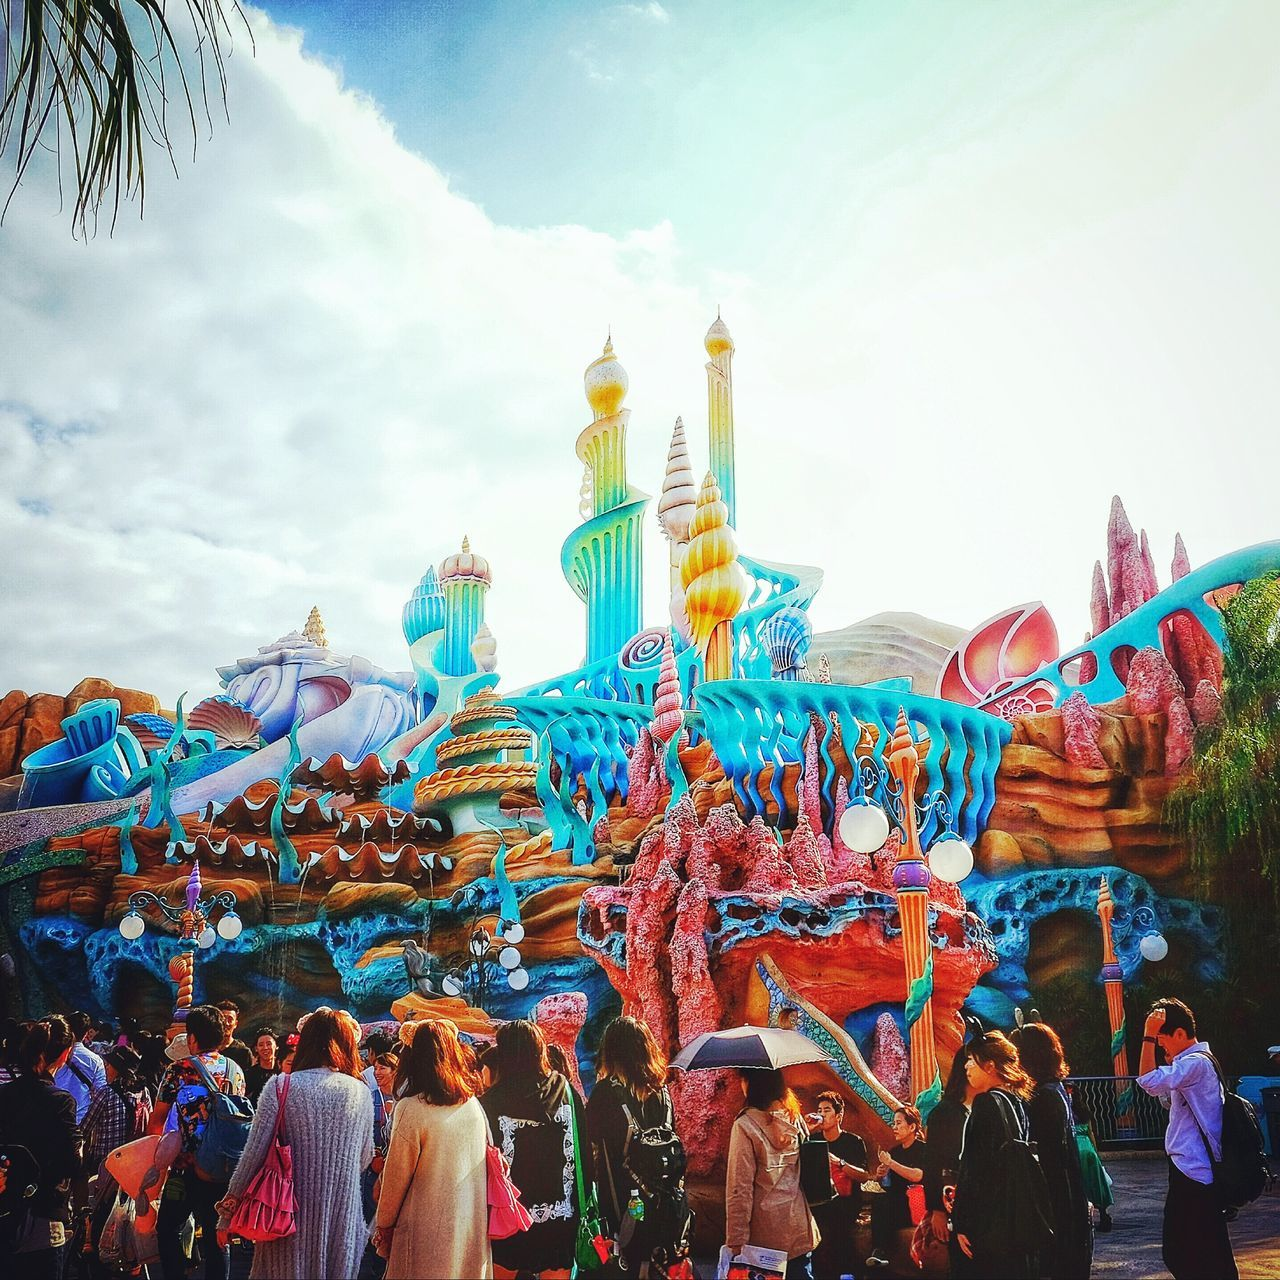 DISNEYSEA Amusement Parks Joyful Underthesea Sealife ARIEL PLACE MERMAID Outdoors Cloud - Sky First Eyeem Photo